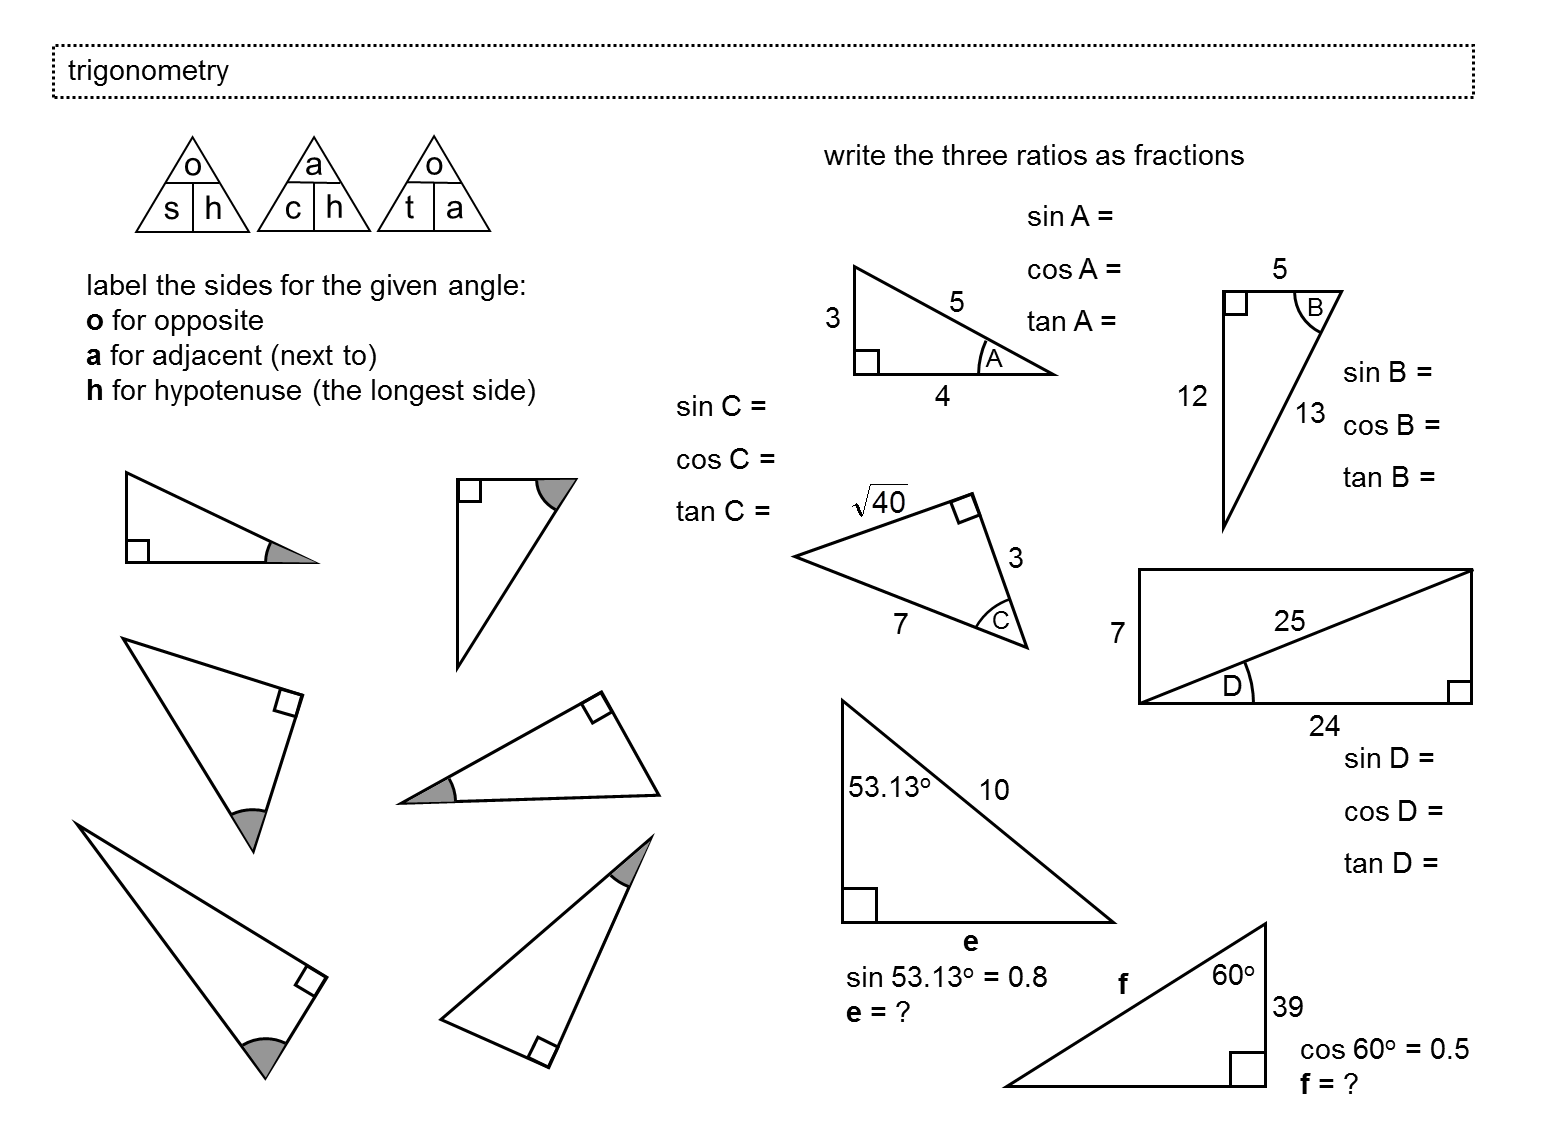 Trigonometry in Right-Angled Triangles